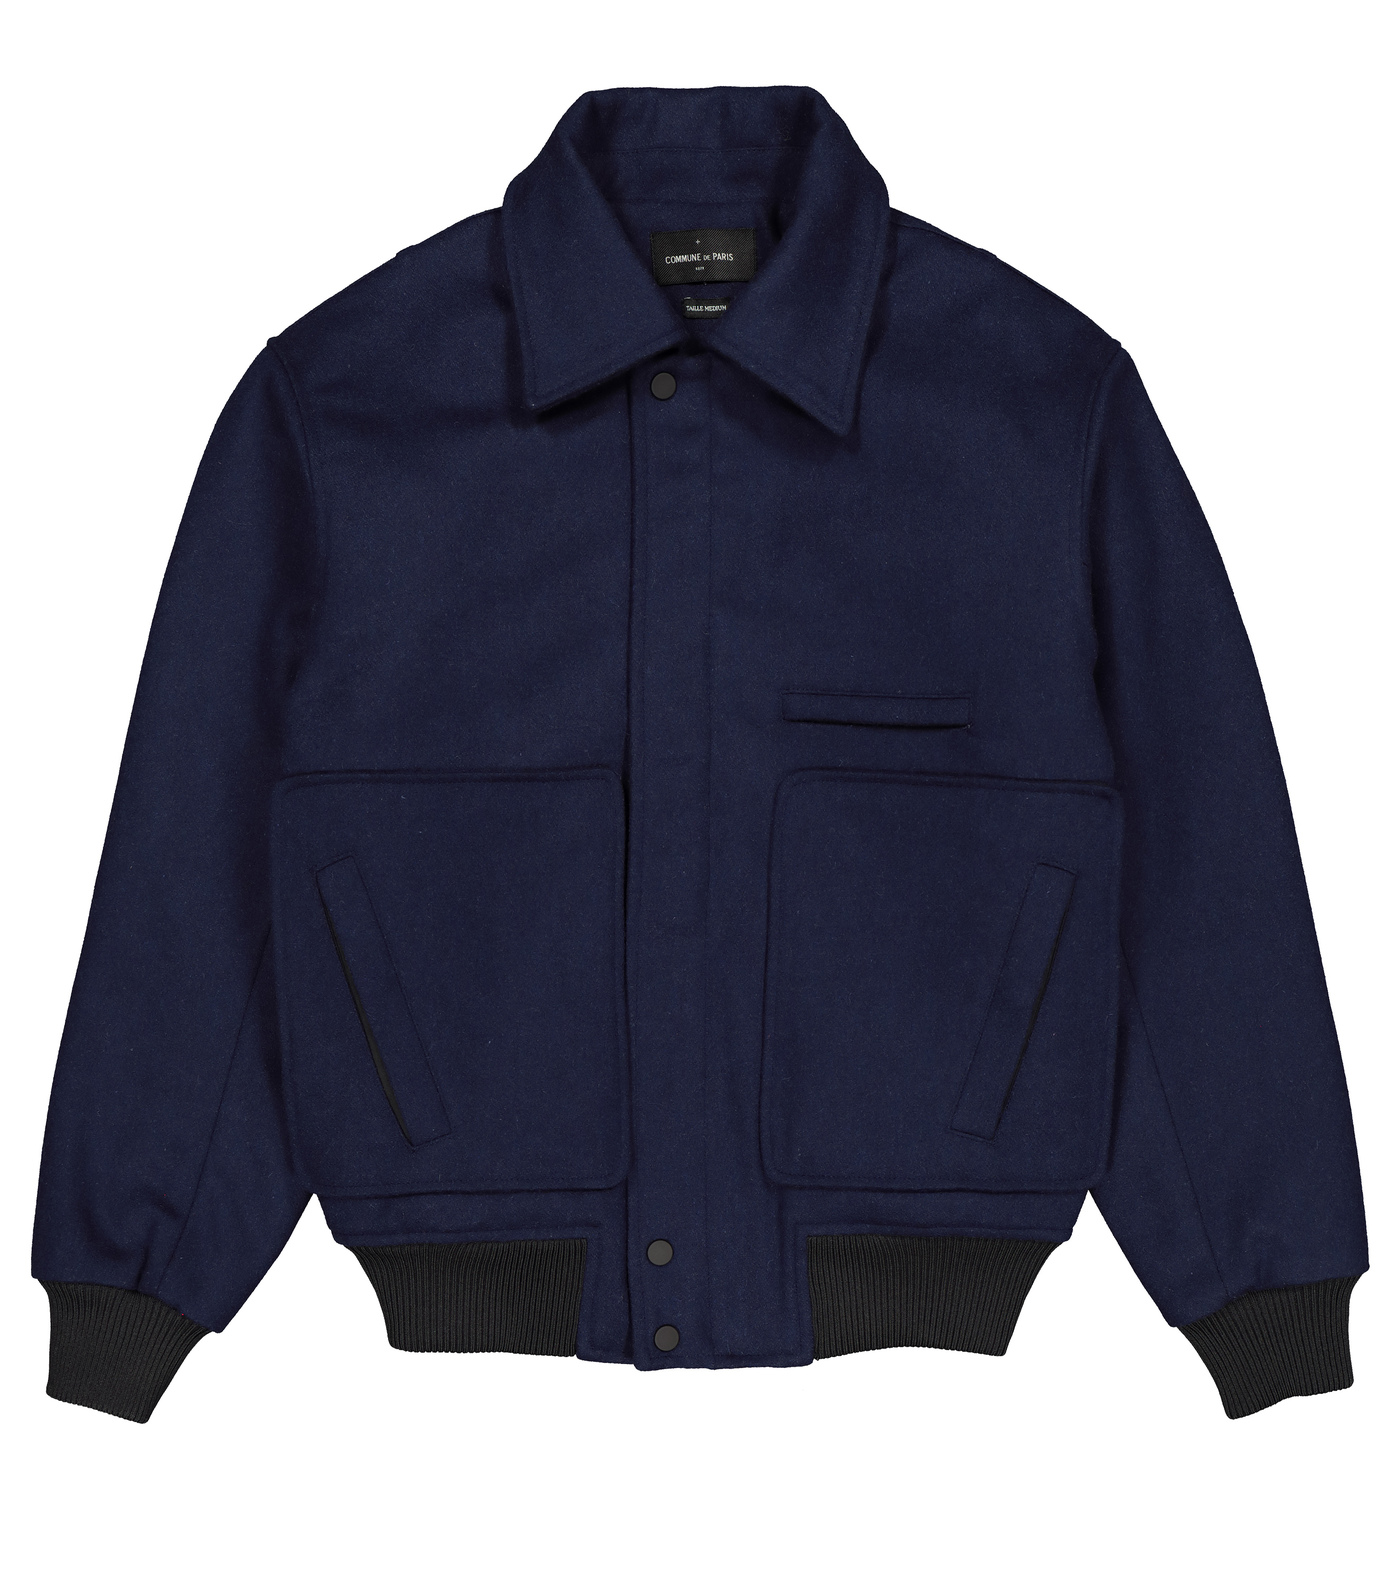 JACKET ETIENNE - Navy